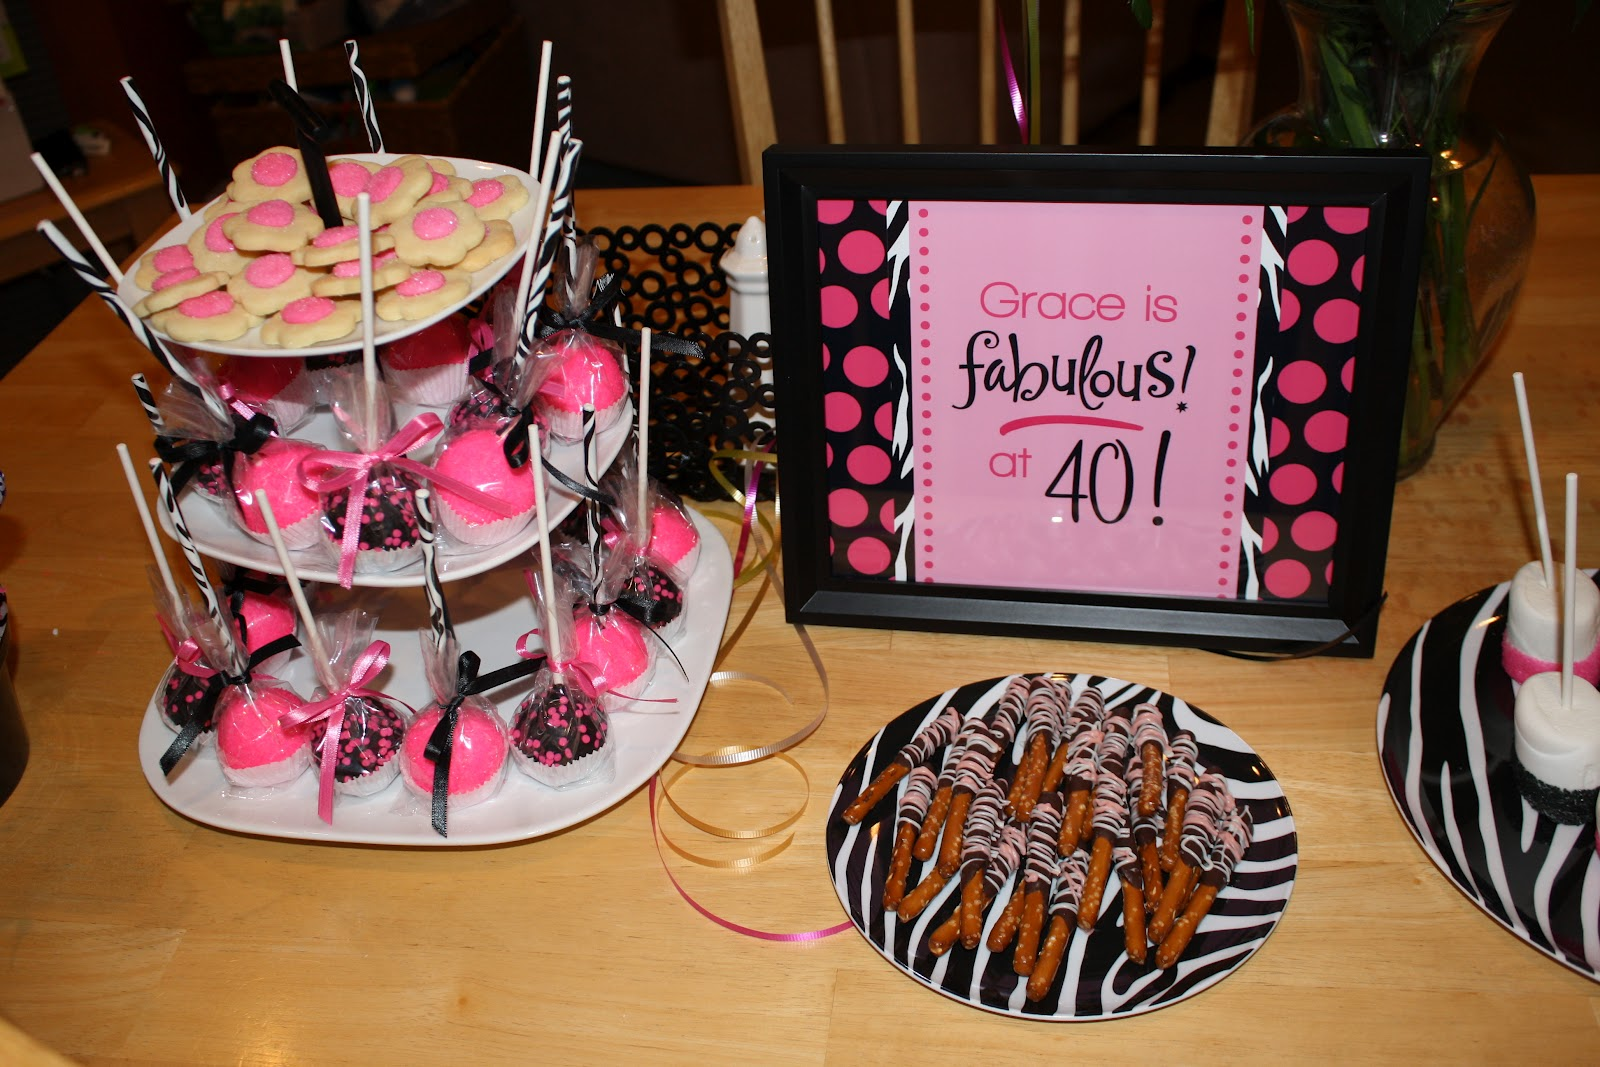 Halloween decorations ideas homemade for kids - Krinkledkrafts 40th Birthday Party